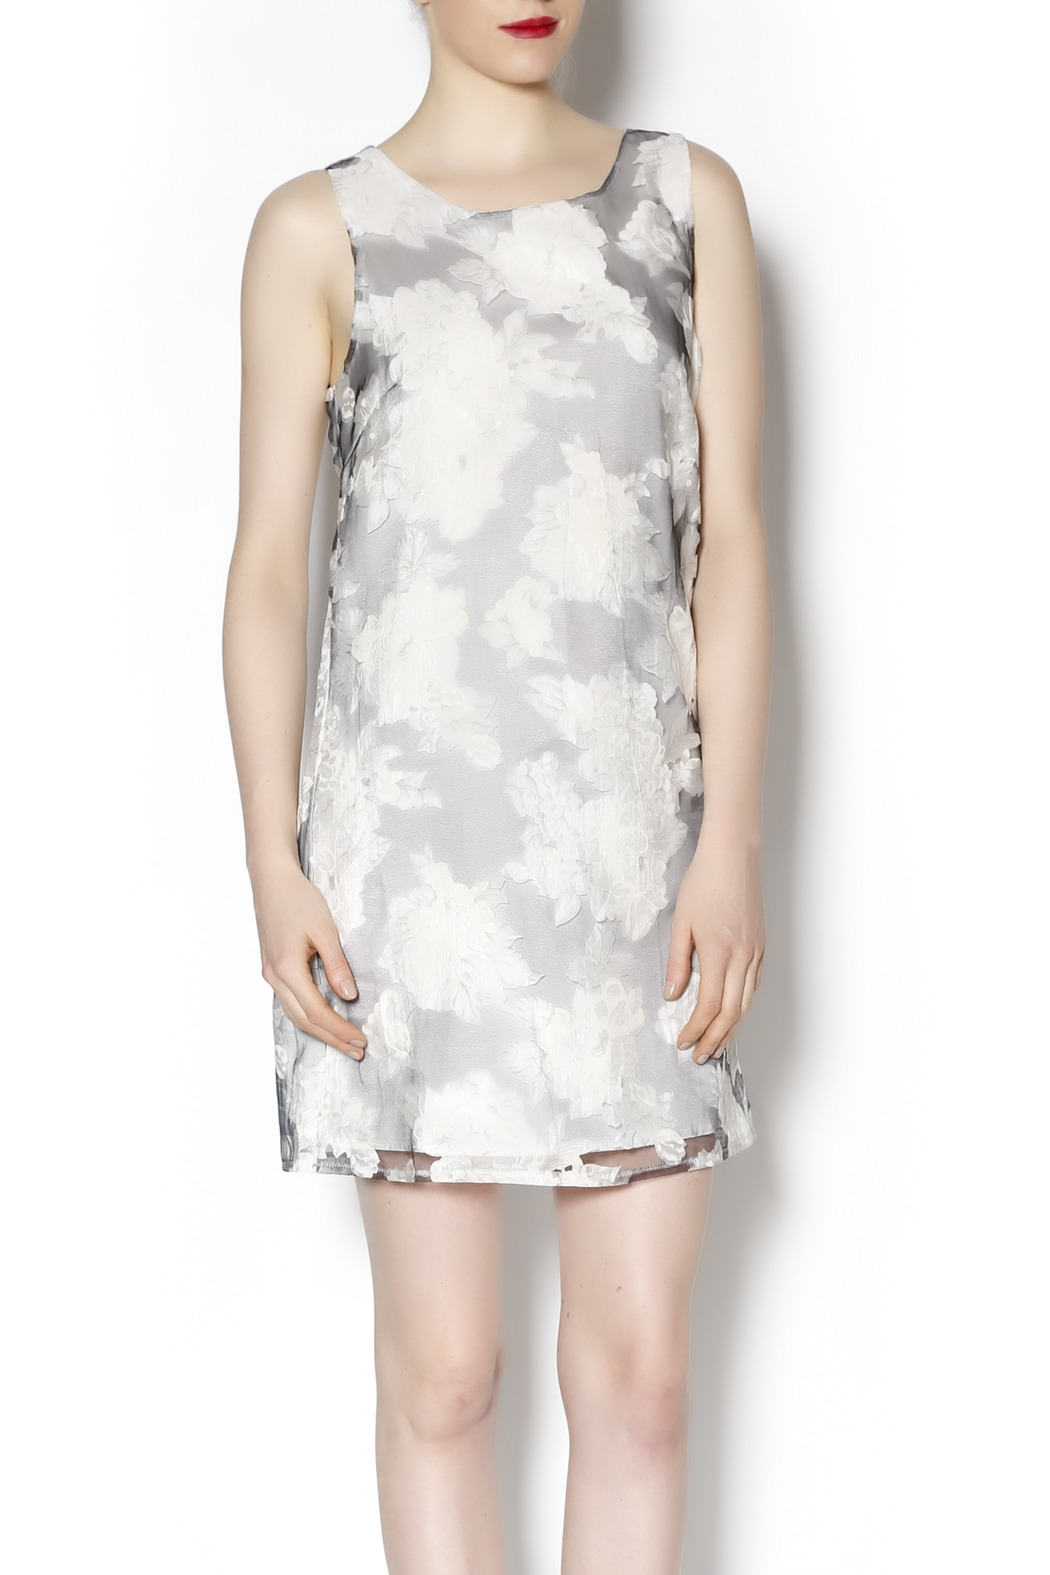 Lucy & Co. sleeveless white dress - Main Image